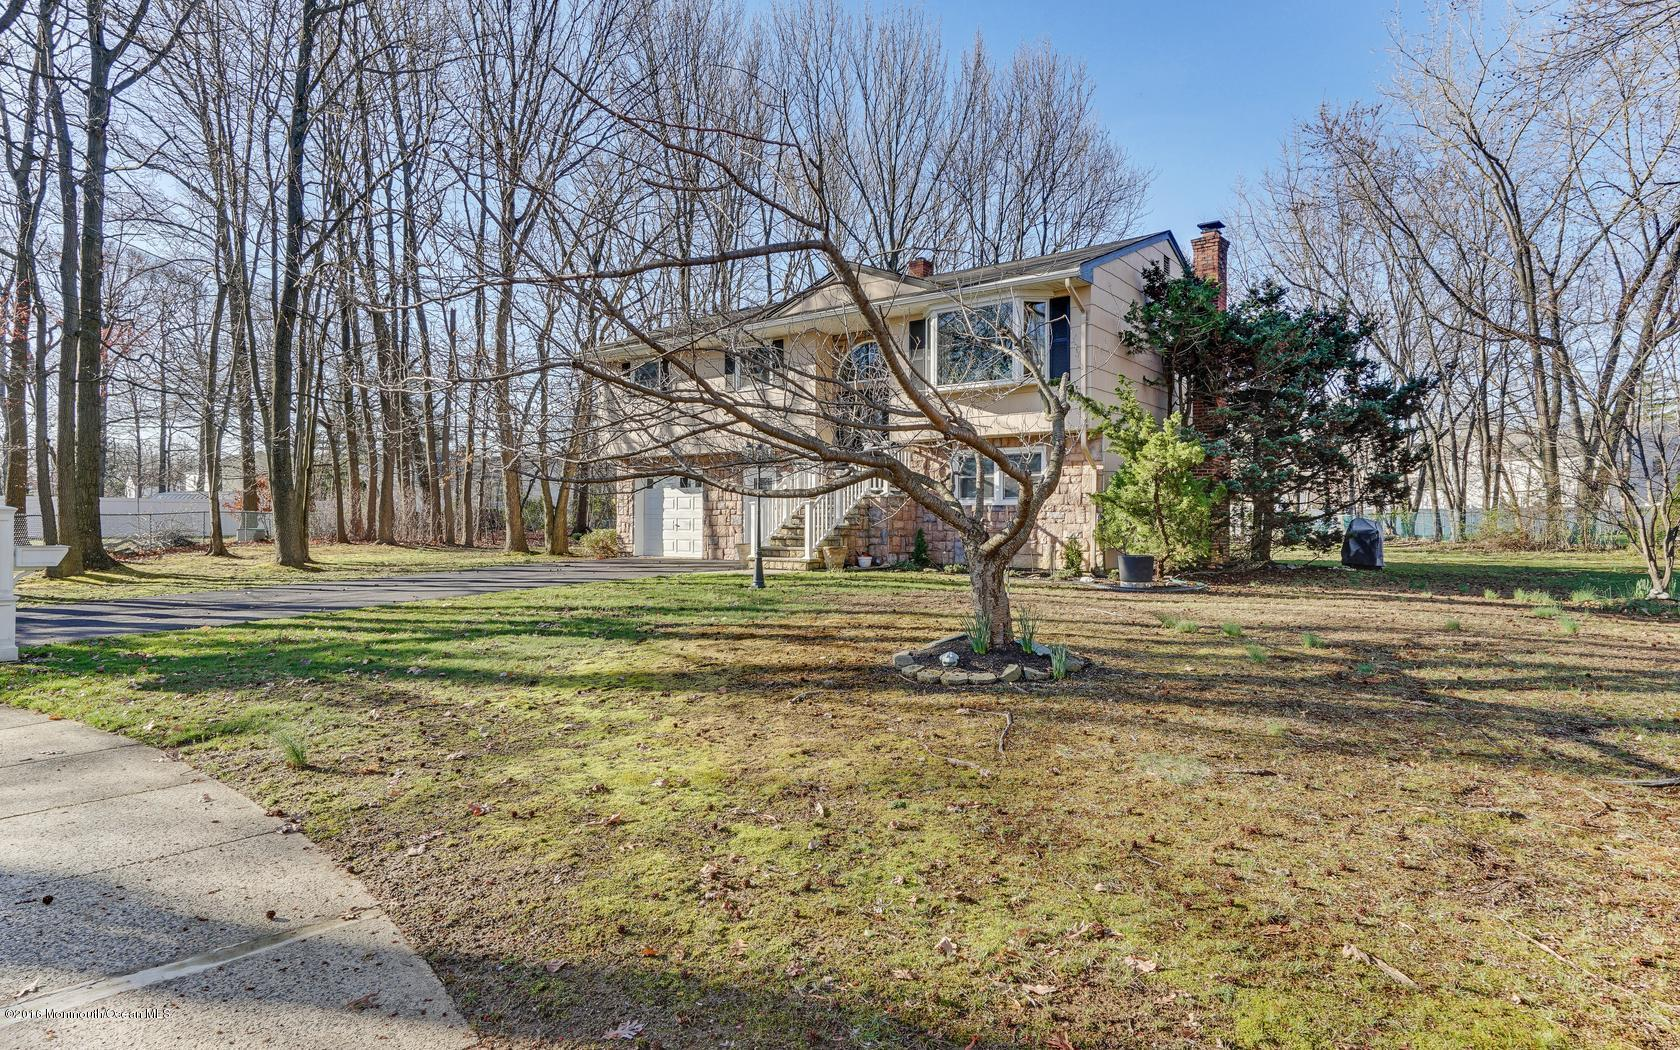 Photo of home for sale at 6 Hogarth Street Street, Hazlet NJ